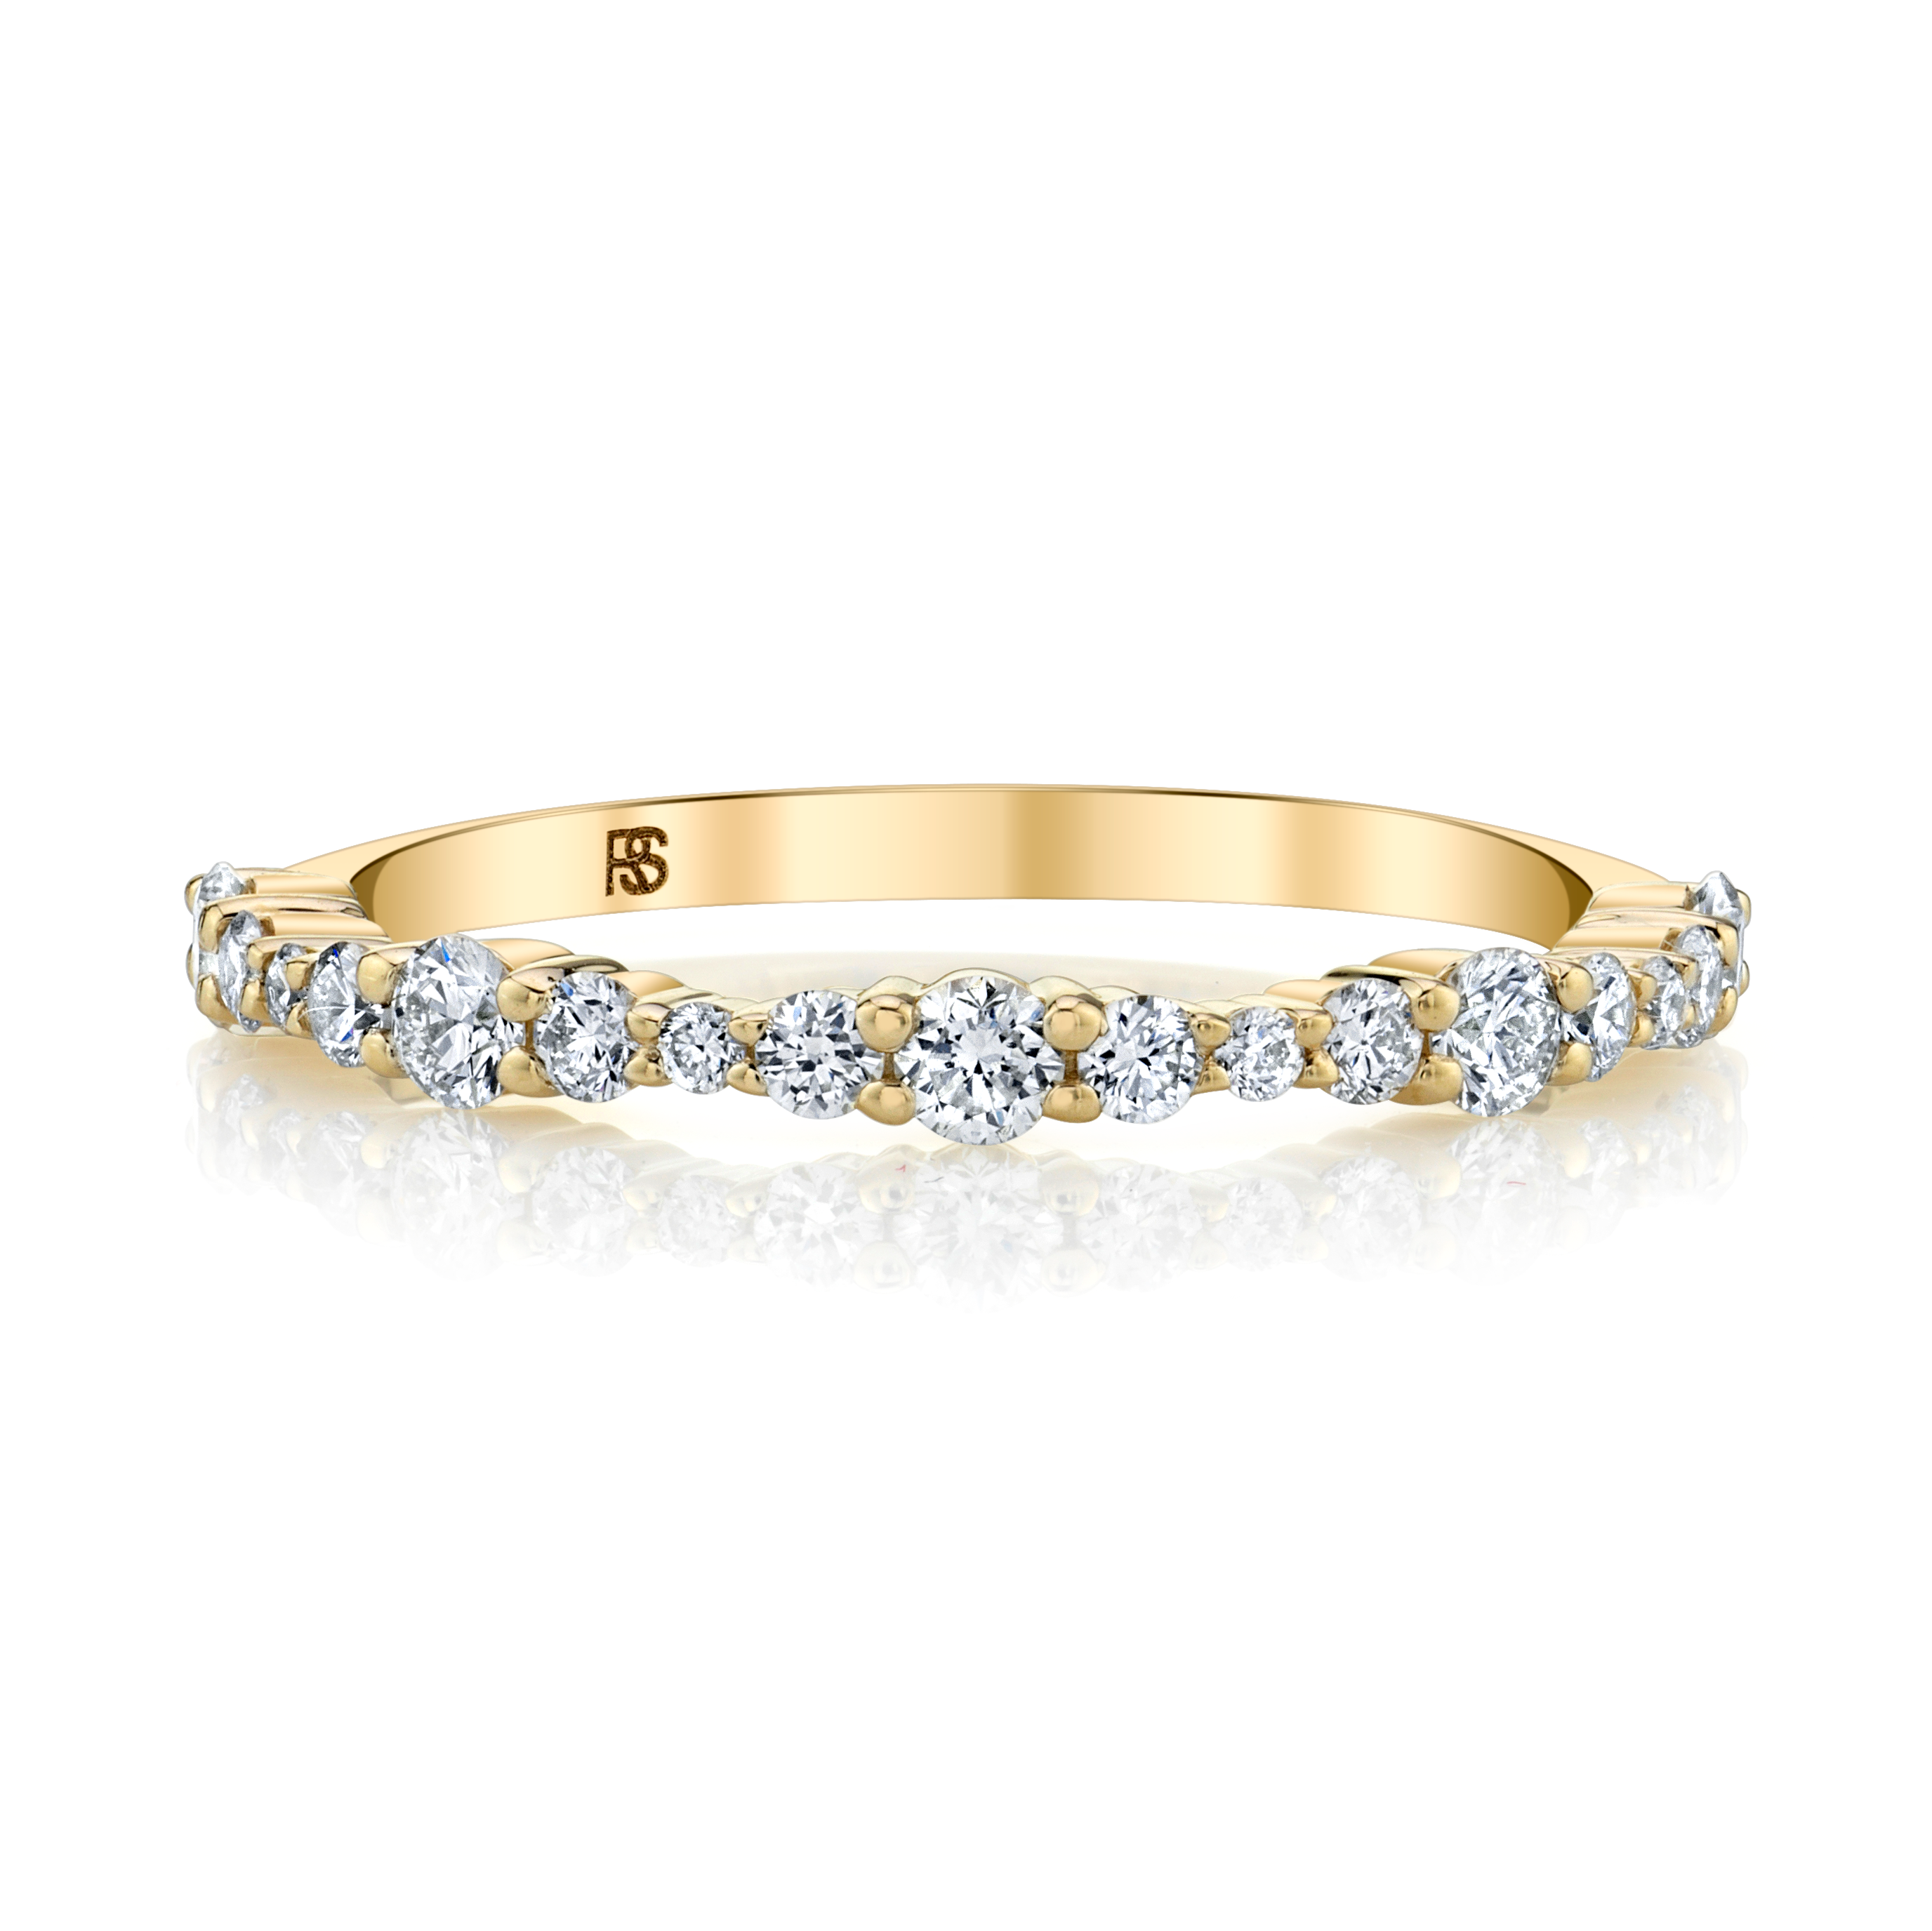 14k Yellow Gold Graduated Diamond Shared Prong Stack Ring